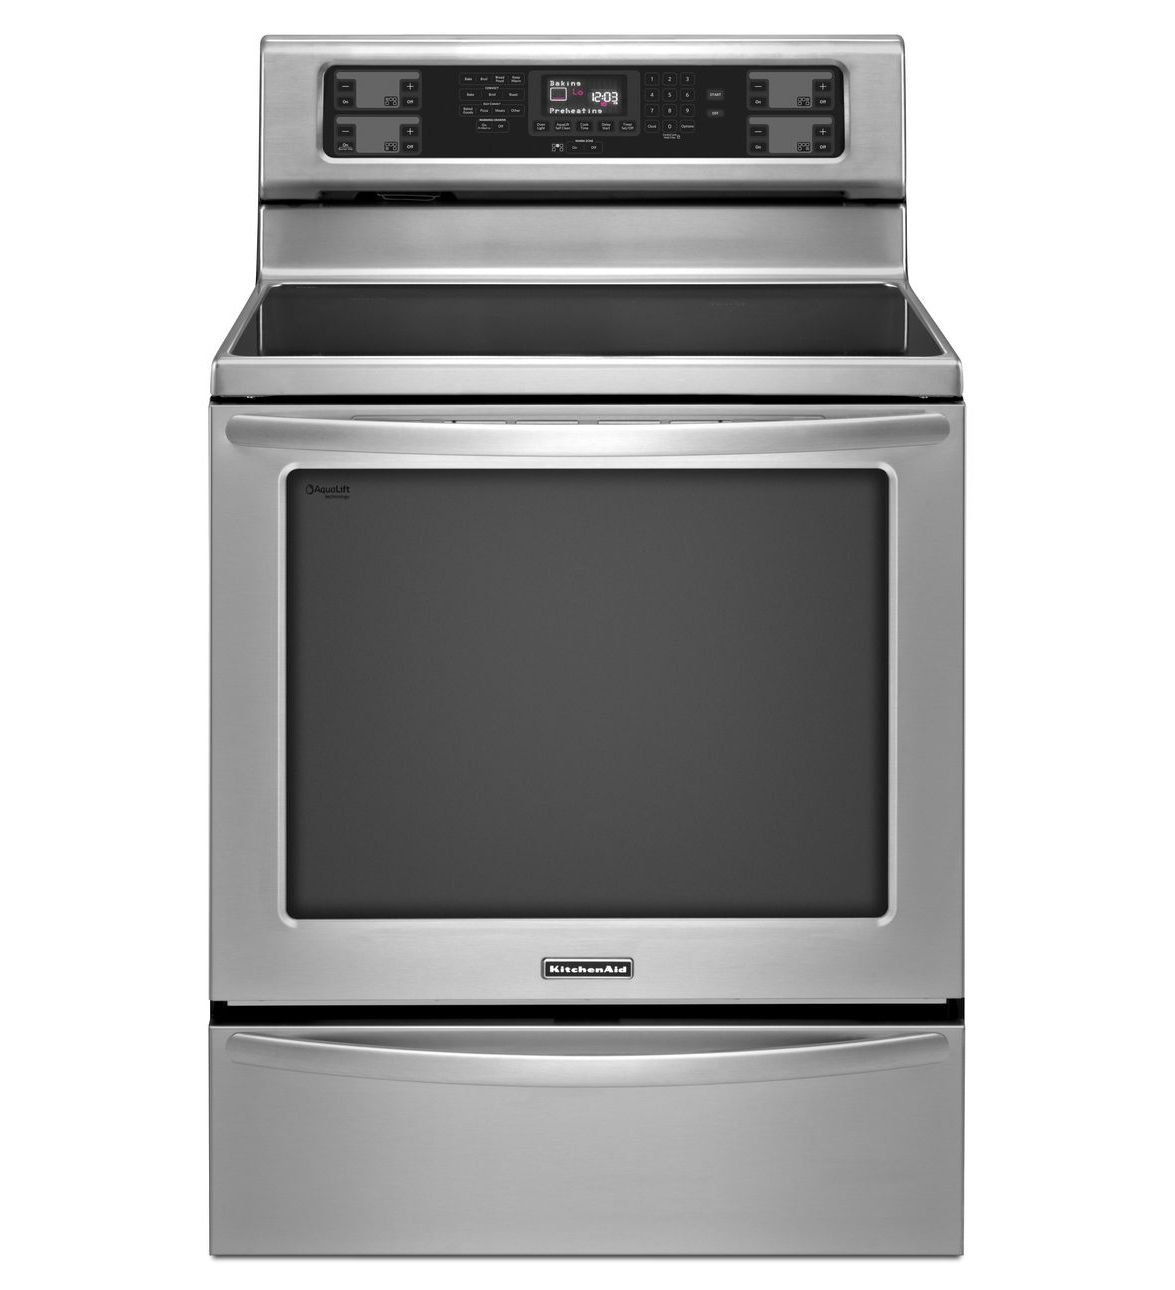 Amazon.com: Kitchenaid KERS306BSS: Freestanding Electric Range &amp on electric range, commercial ranges, kitchenaid microwave, amana range, whirlpool range, dual fuel ranges, luxury ranges, sears ranges, ge range, maytag ranges, maytag range, dual fuel range, thermador ranges, jenn-air ranges, professional ranges, hotpoint range, ge ranges, dcs ranges, smeg ranges, kitchenaid parts, bosch ranges, kitchenaid refrigerator, whirlpool ranges, stoves range, range parts, kenmore ranges, electric kitchen range, magic chef range, kitchenaid electric range, kitchenaid dishwasher, sharp ranges, frigidaire range, kitchenaid appliance, wolf ranges, jenn air range, frigidaire ranges, gas ranges, dacor ranges, amana ranges,